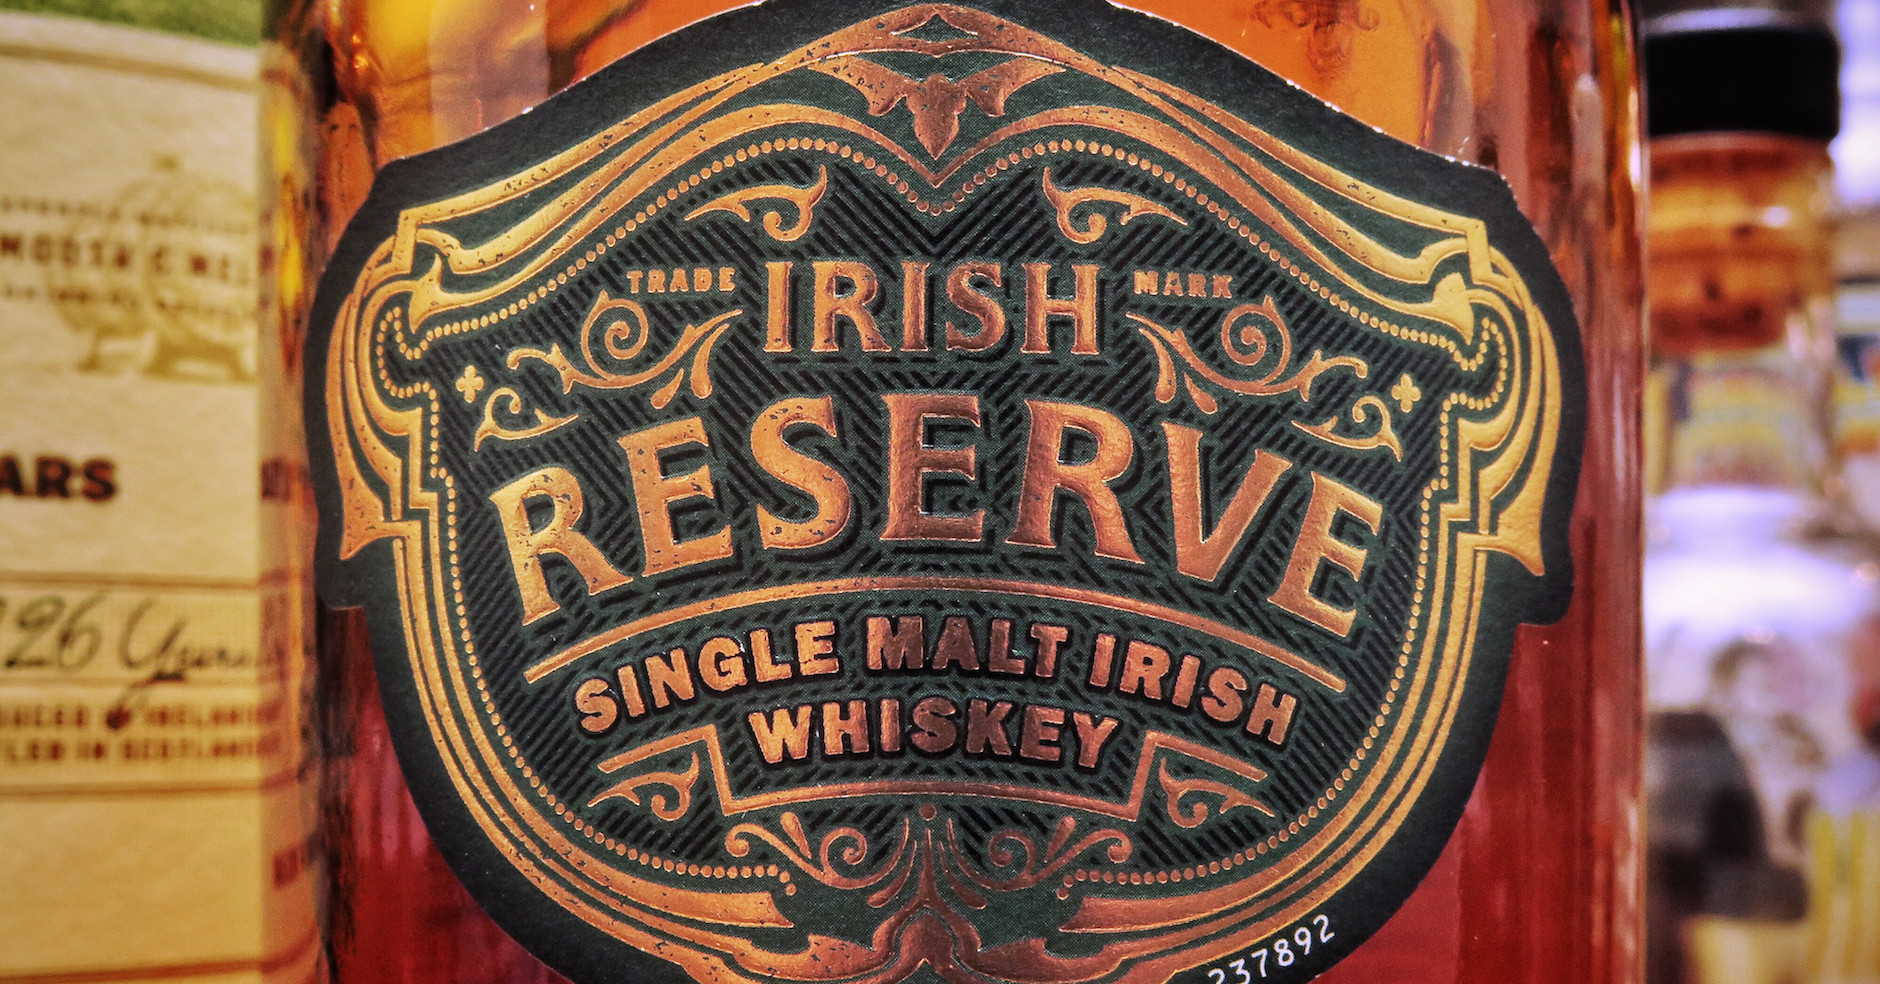 Aldi Irish Reserve 26 Year Old Single Malt